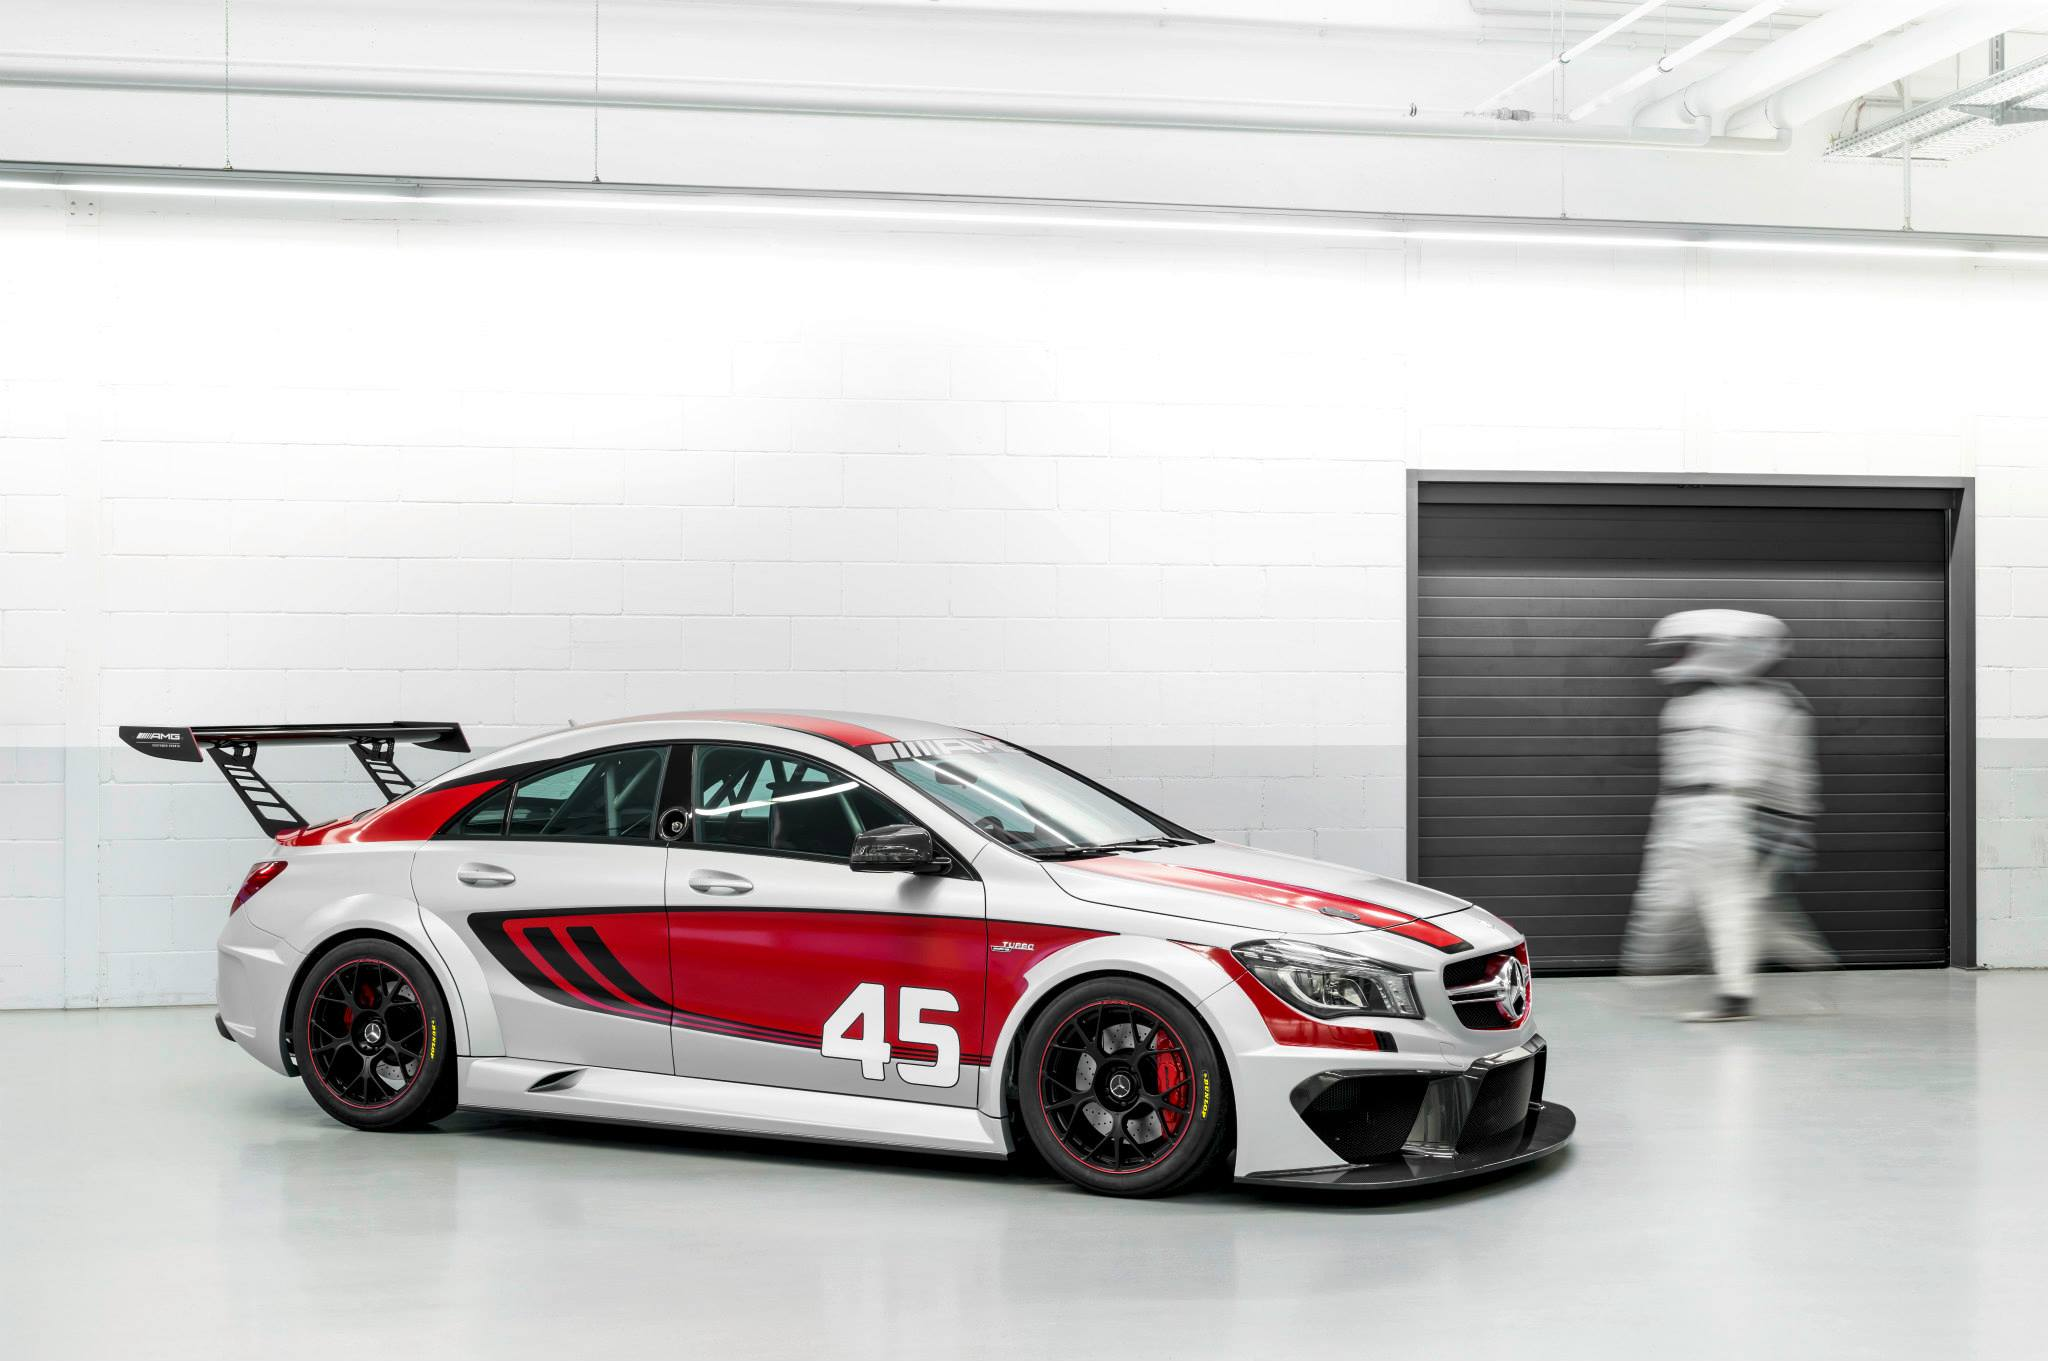 Mercedes benz cla 45 amg racing series picture 88811 for Mercedes benz race